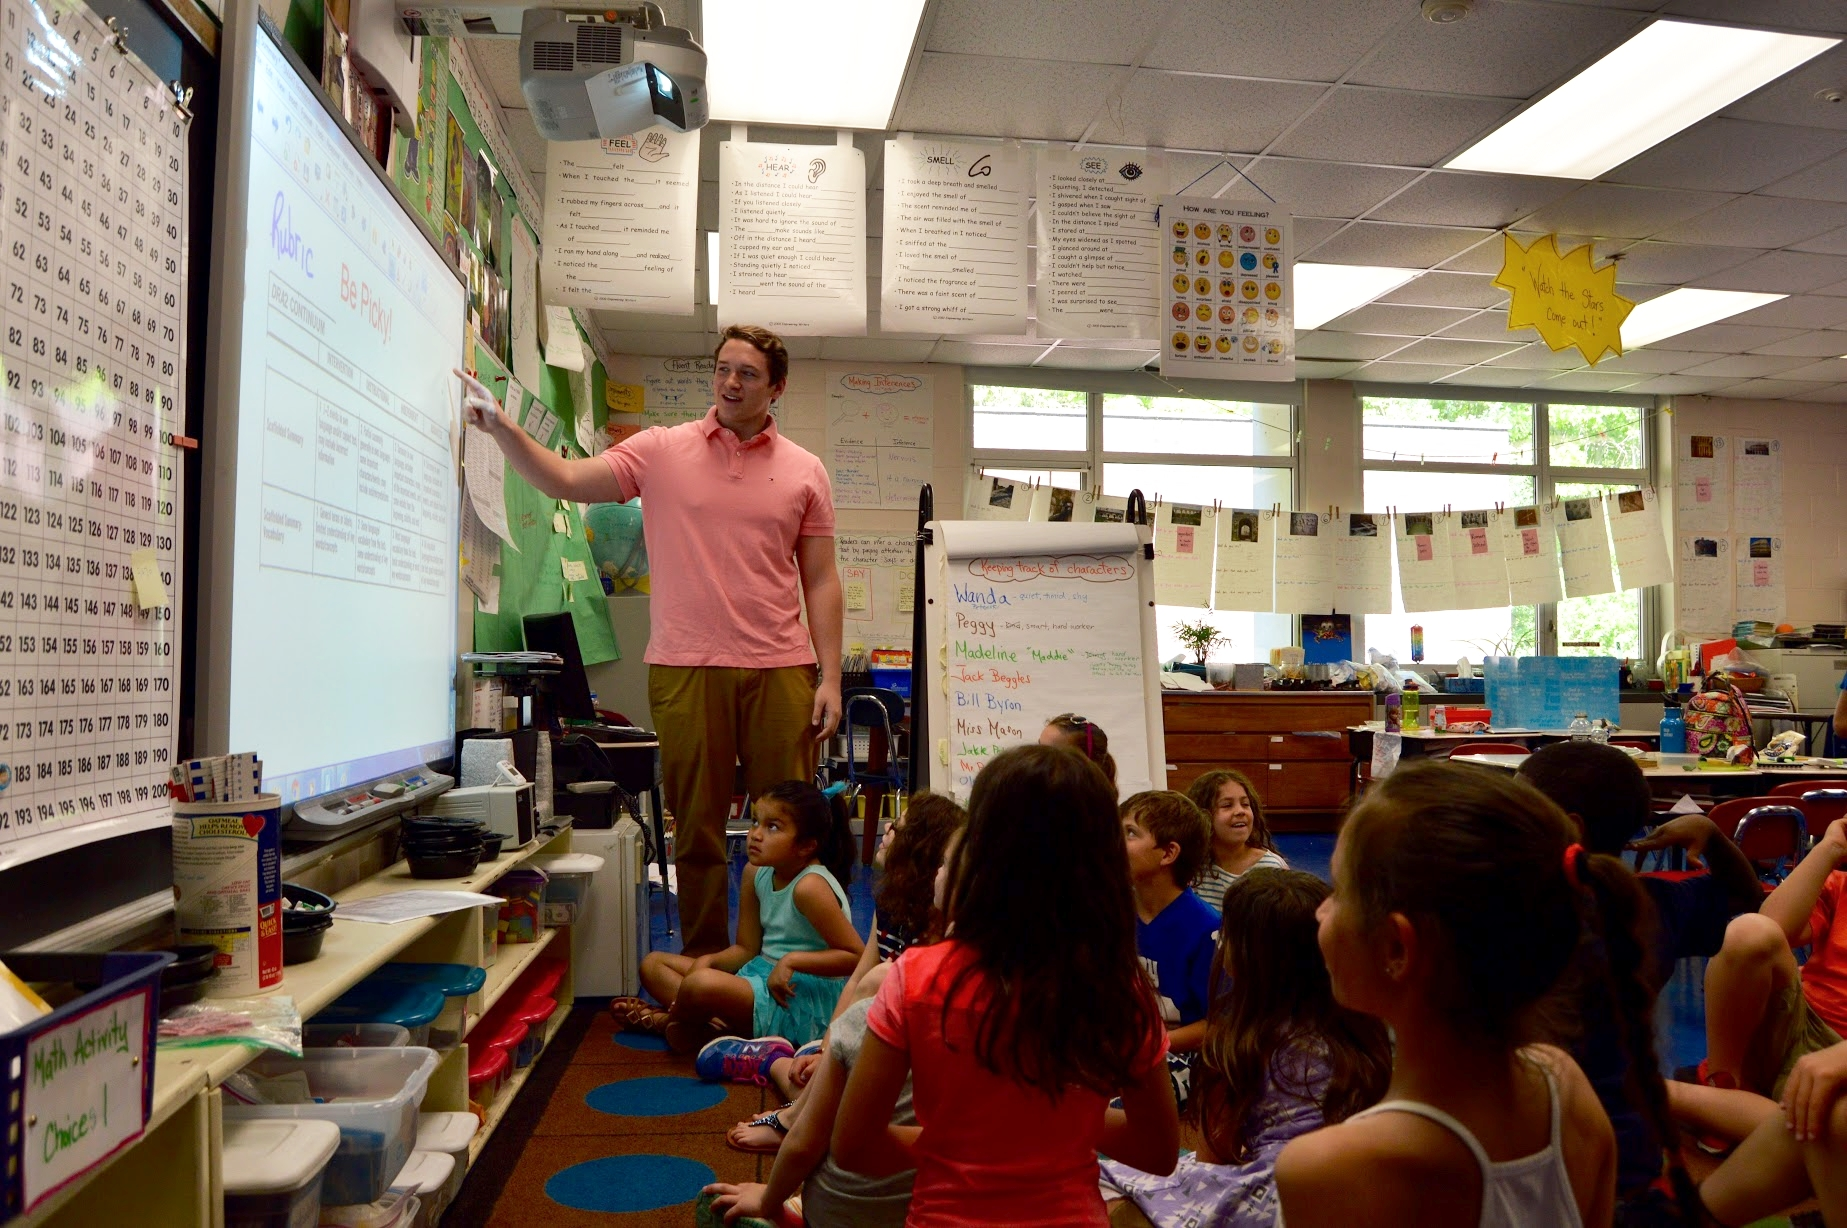 Dylan Miles teaching his second grade class at   East School  .